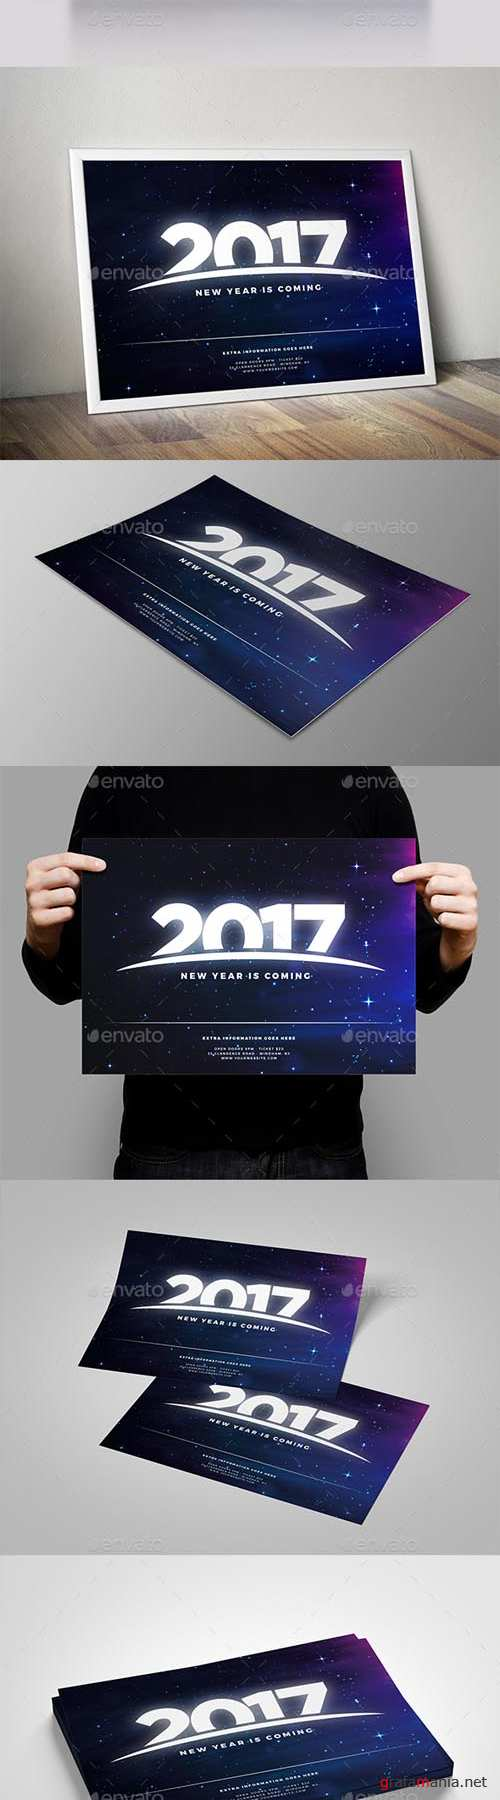 New Year Coming 2017 Flyer 18274189